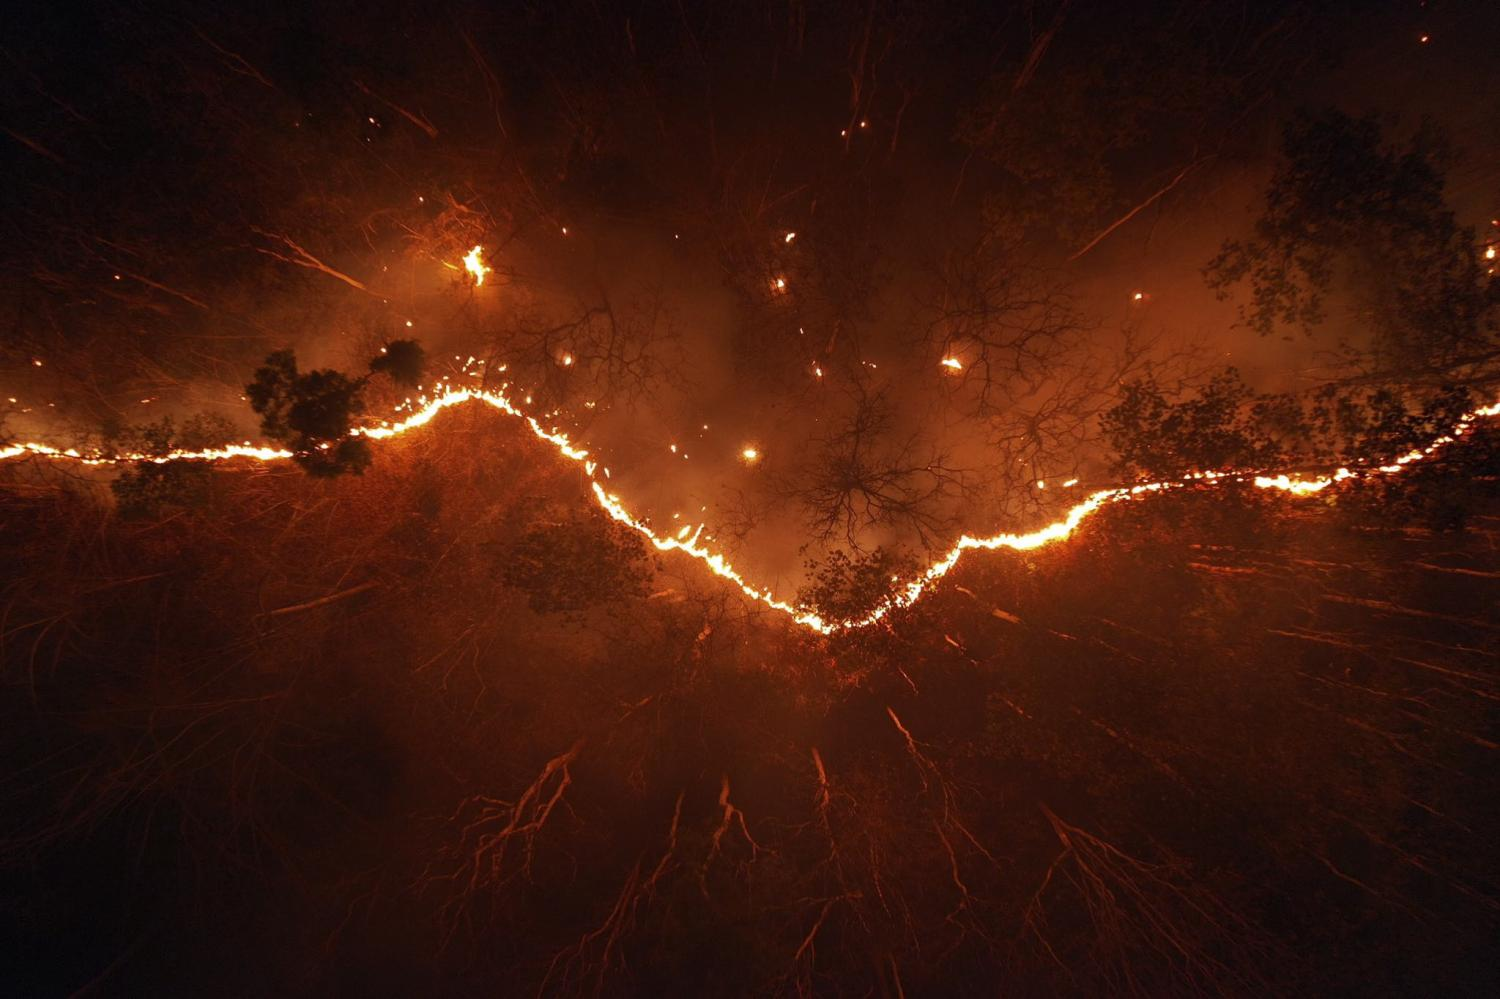 A huge fire engulfs part of a Chiang Mai forest on the night of March 25.(Chiang Mai Volunteer Drone Team)